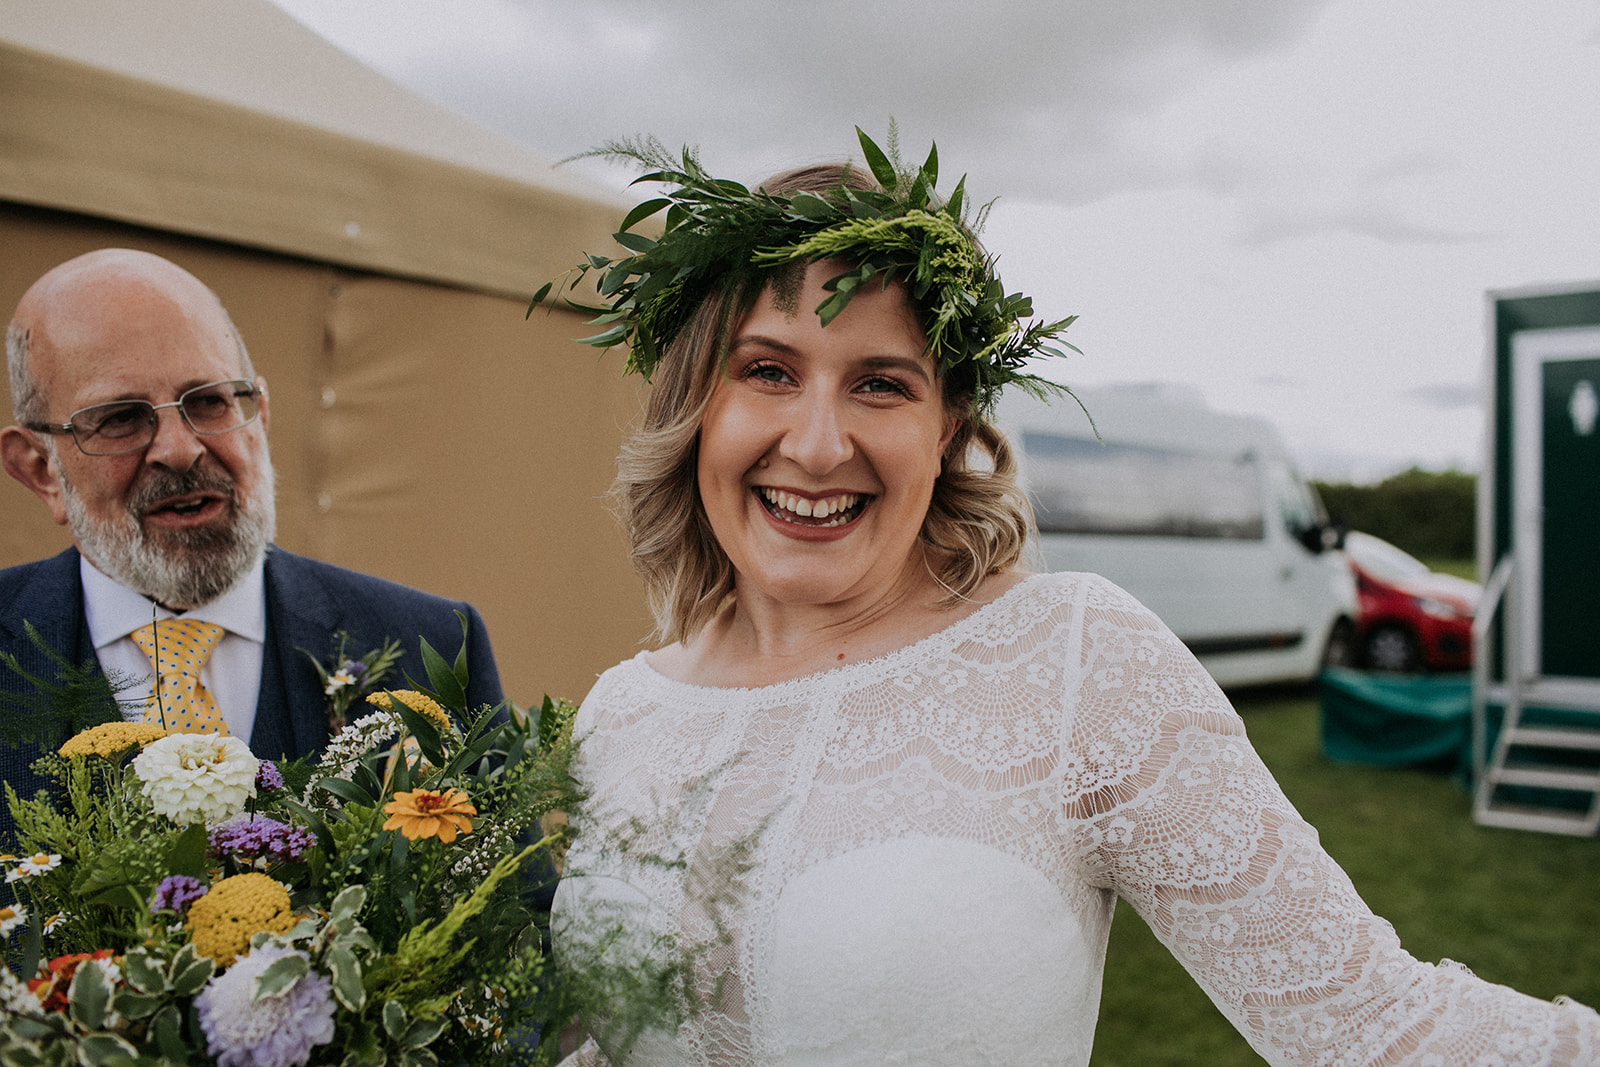 Bride with greenery crown and relaxed bouquet ready for her tipi celebration at cattows farm wedding